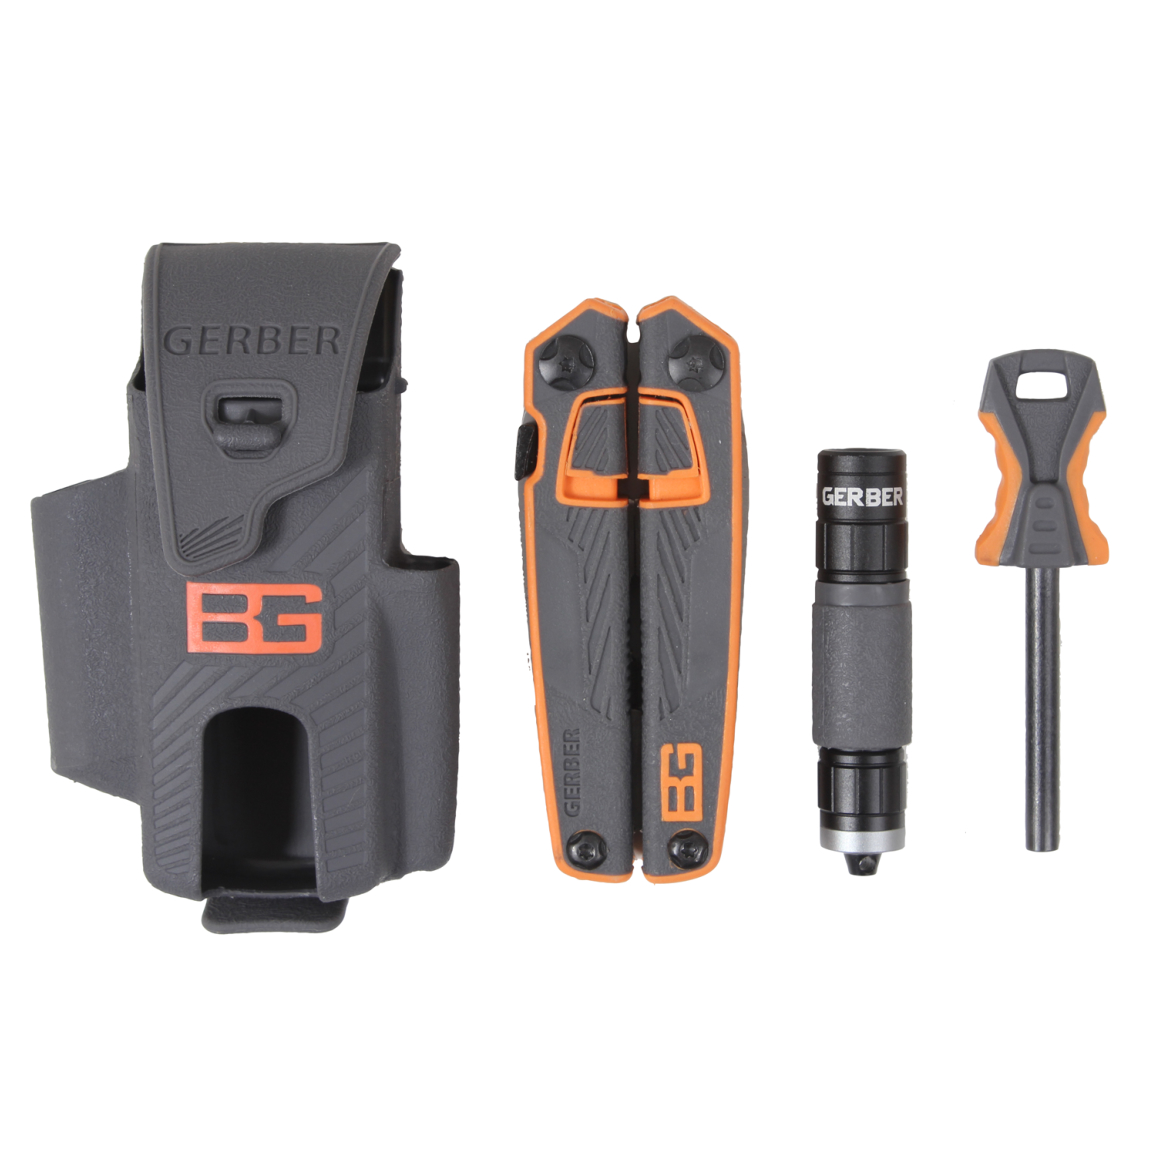 Gerber Bear Grylls Ultimate Survival Pack with Multitool, Flashlight, and Fire Starter